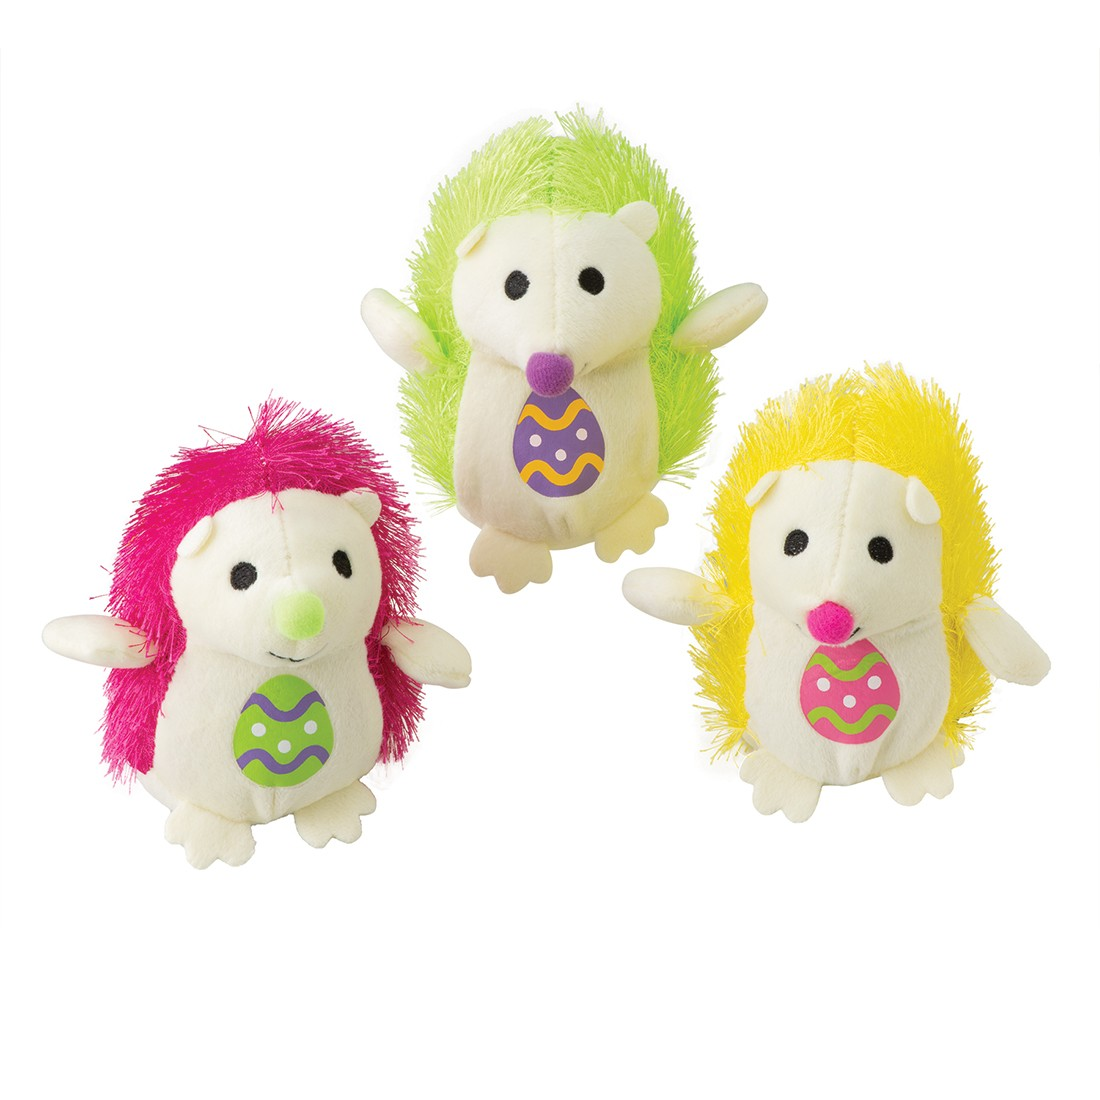 Plush Easter Hedgehogs [image]